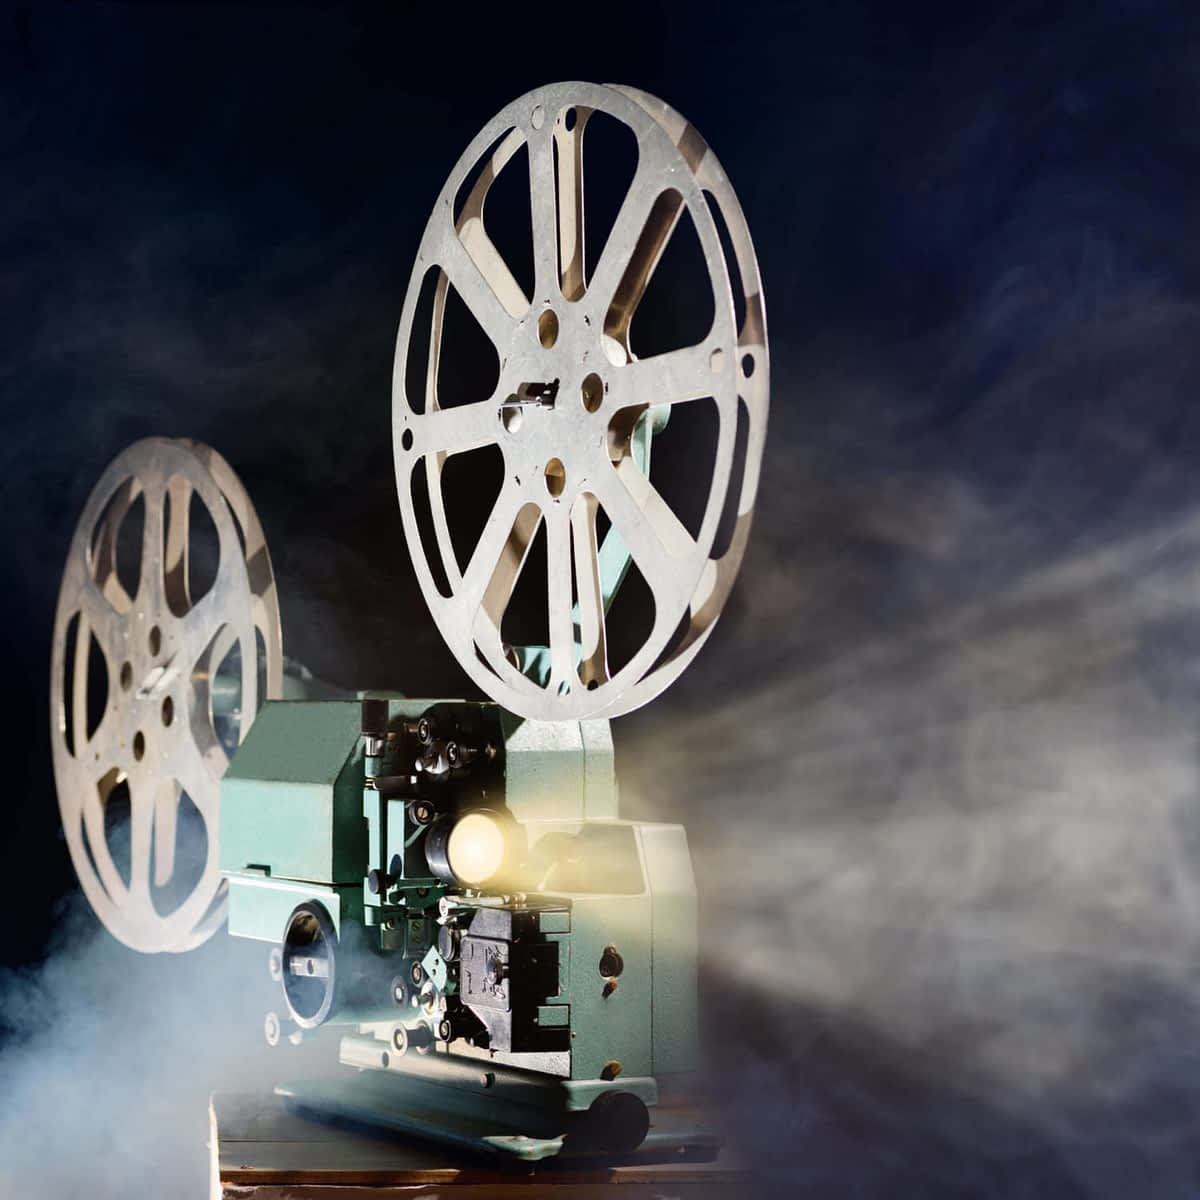 Great for film, technology, cinematic, horror, animation, sci fi project and themes.